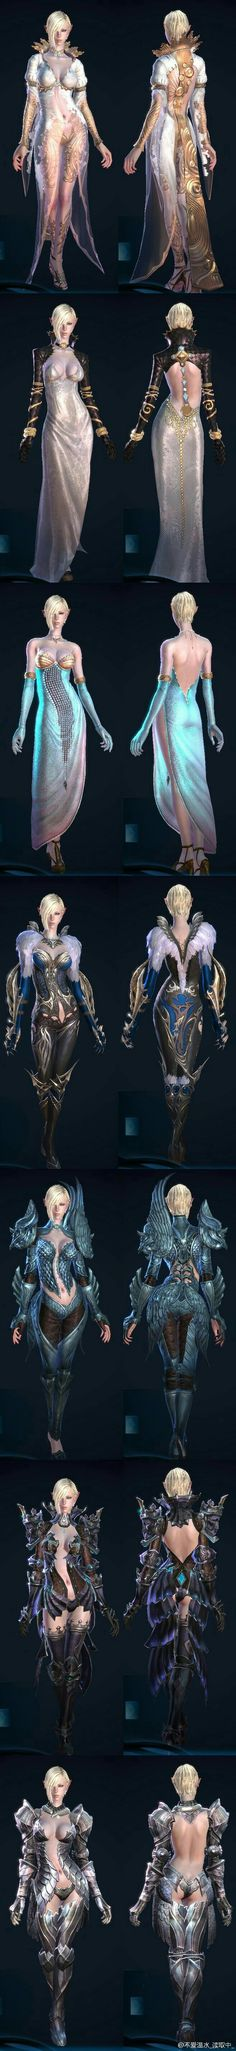 Polymorphed Form 10 Succubus Clothing 25 covert